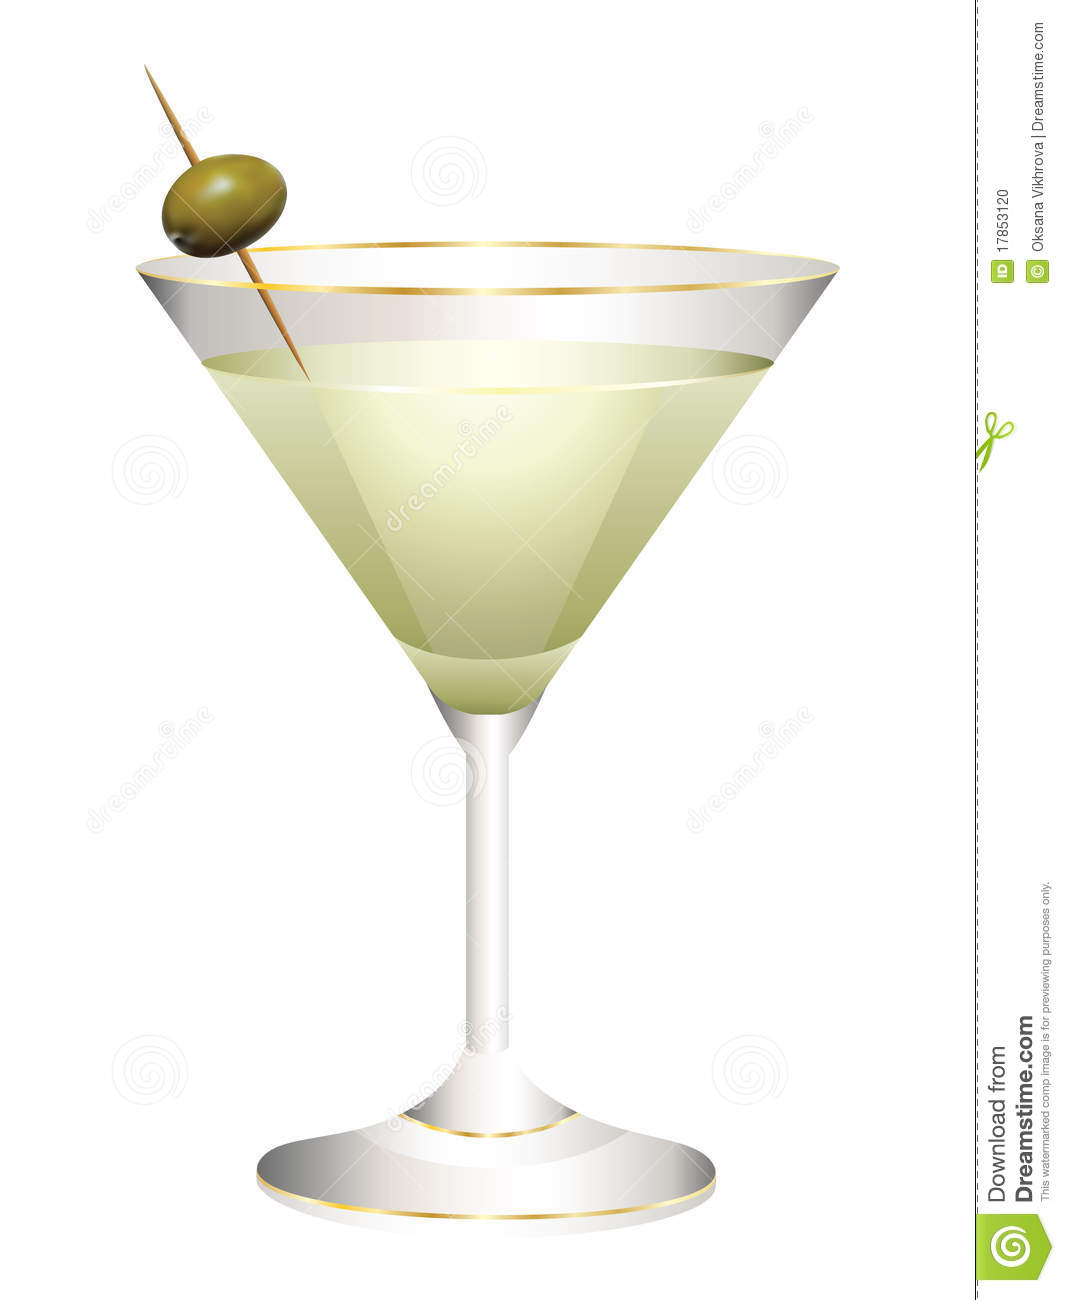 Glass With A Cocktail And Olives. Stock Photo - Image: 17853120